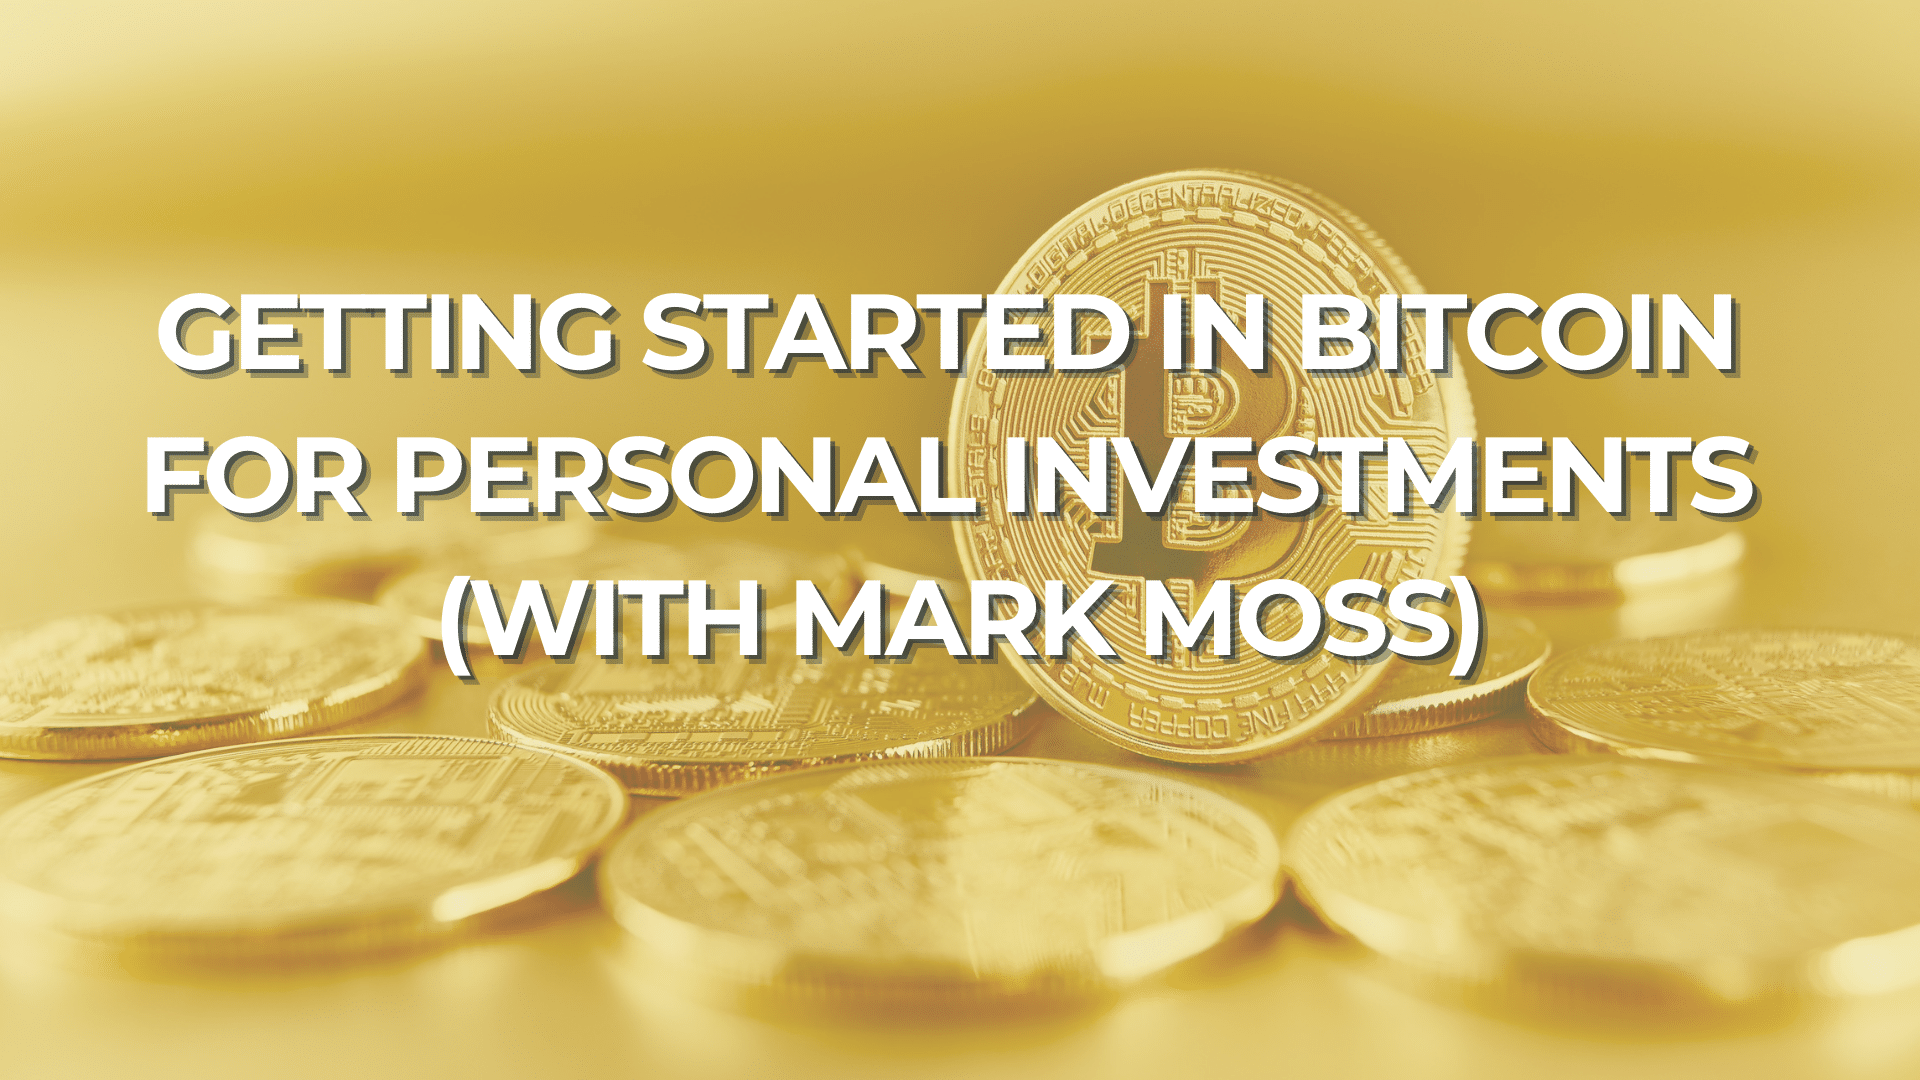 Getting Started in Bitcoin for Personal Investments | Ken McElroy Image